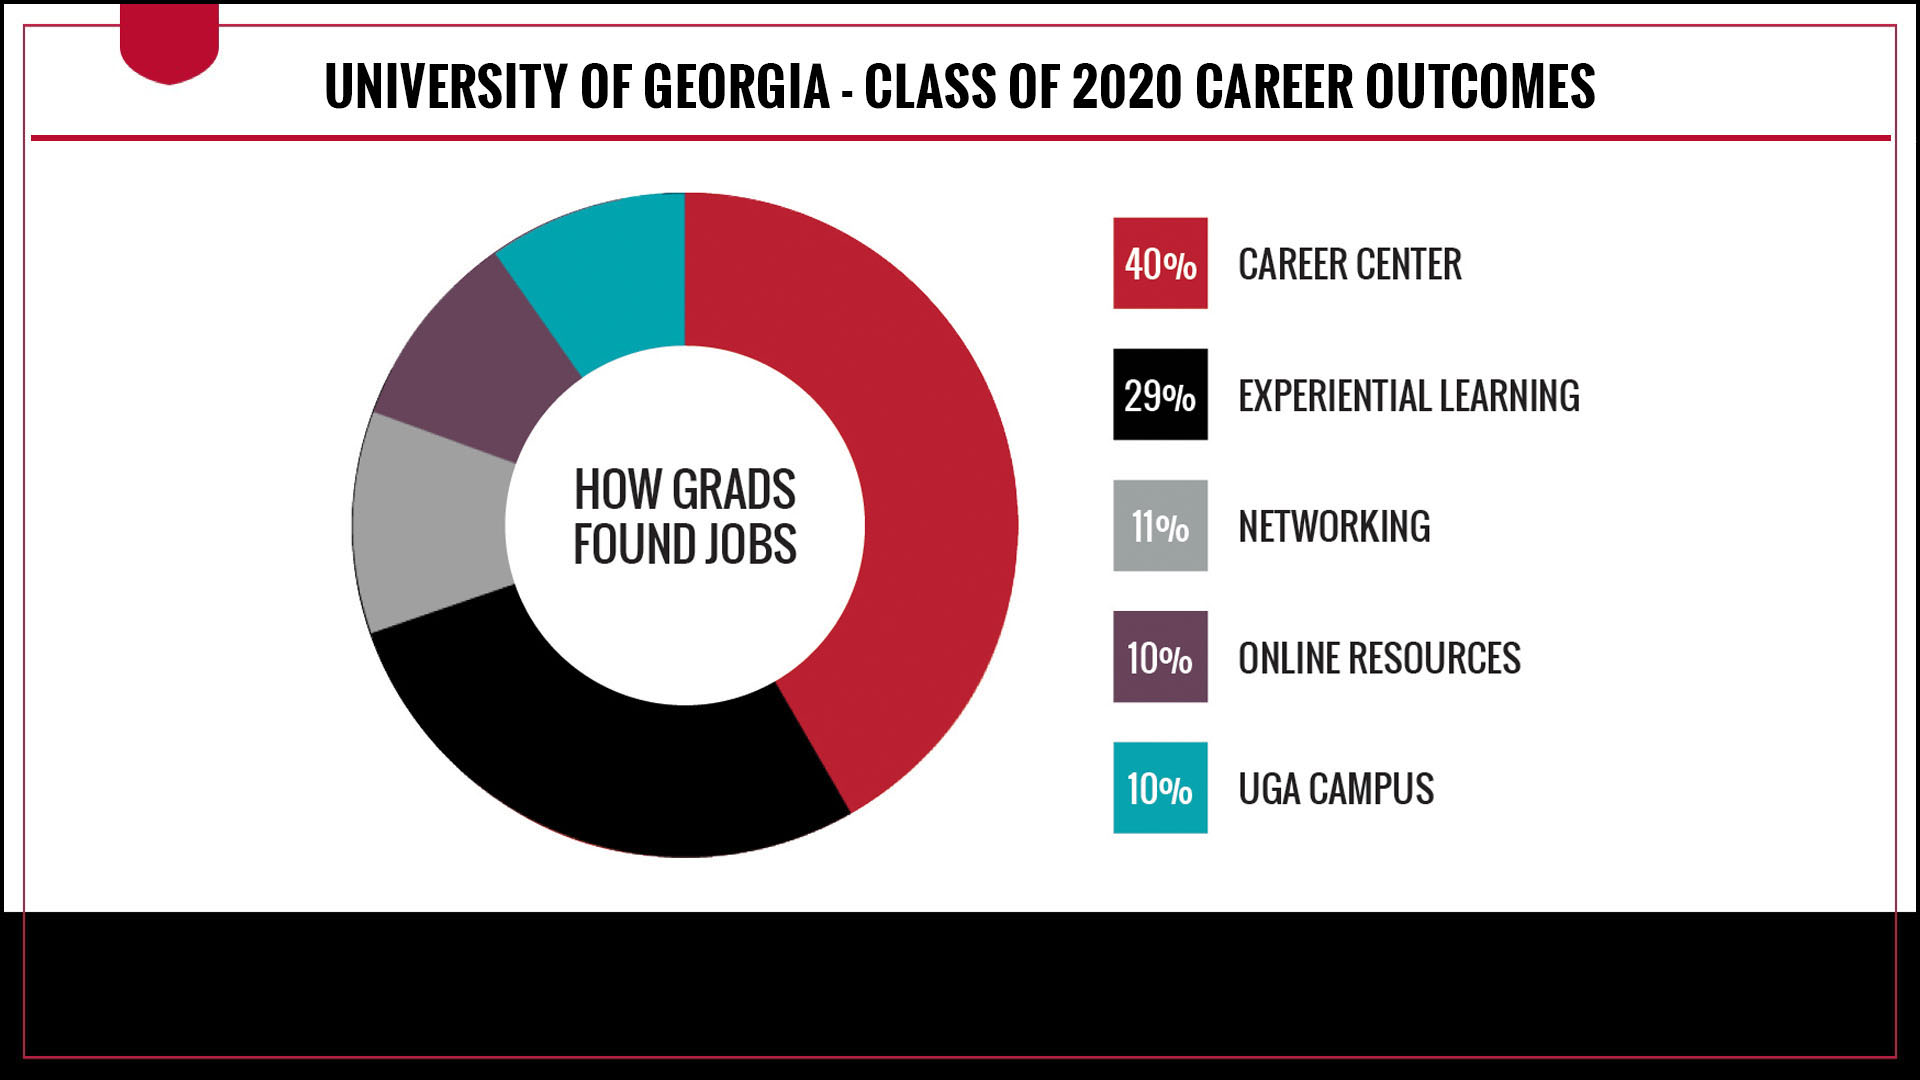 How graduates found jobs - 40% Career Center - 29% Experiential Learning - 11% Networking - 10% Online Resources - 10% UGA Campus Resources